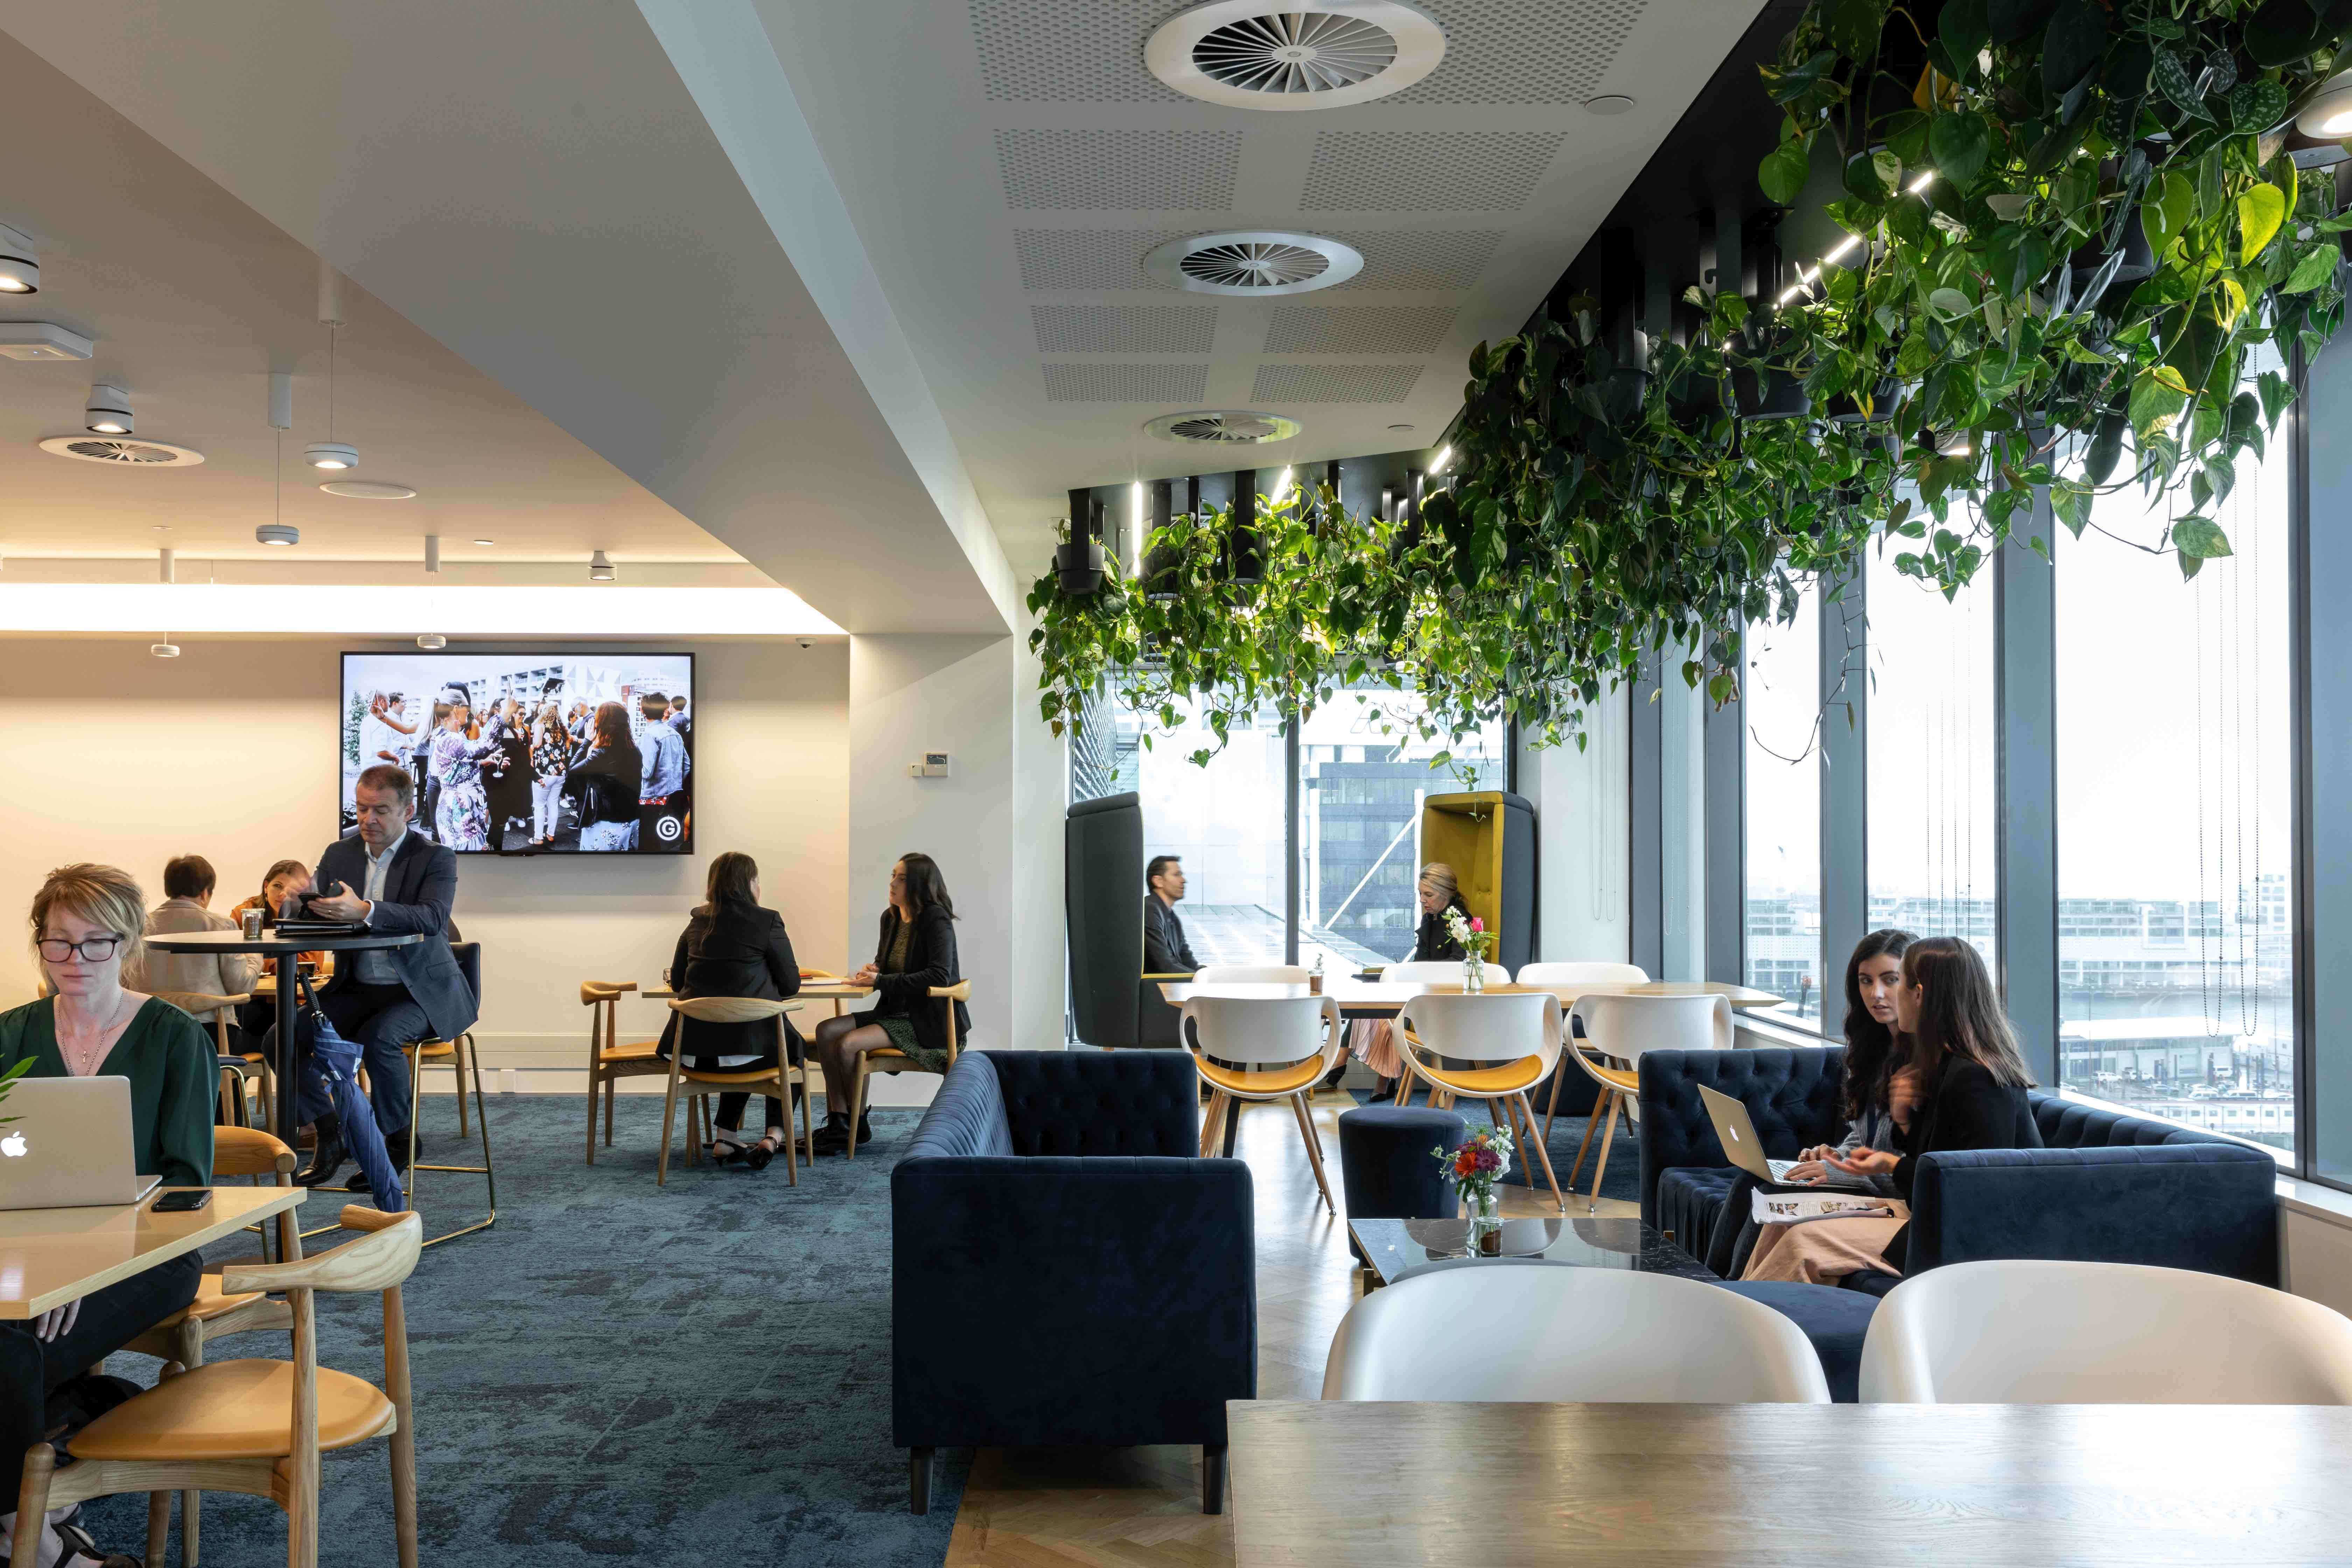 Britomart office shared space rooftop